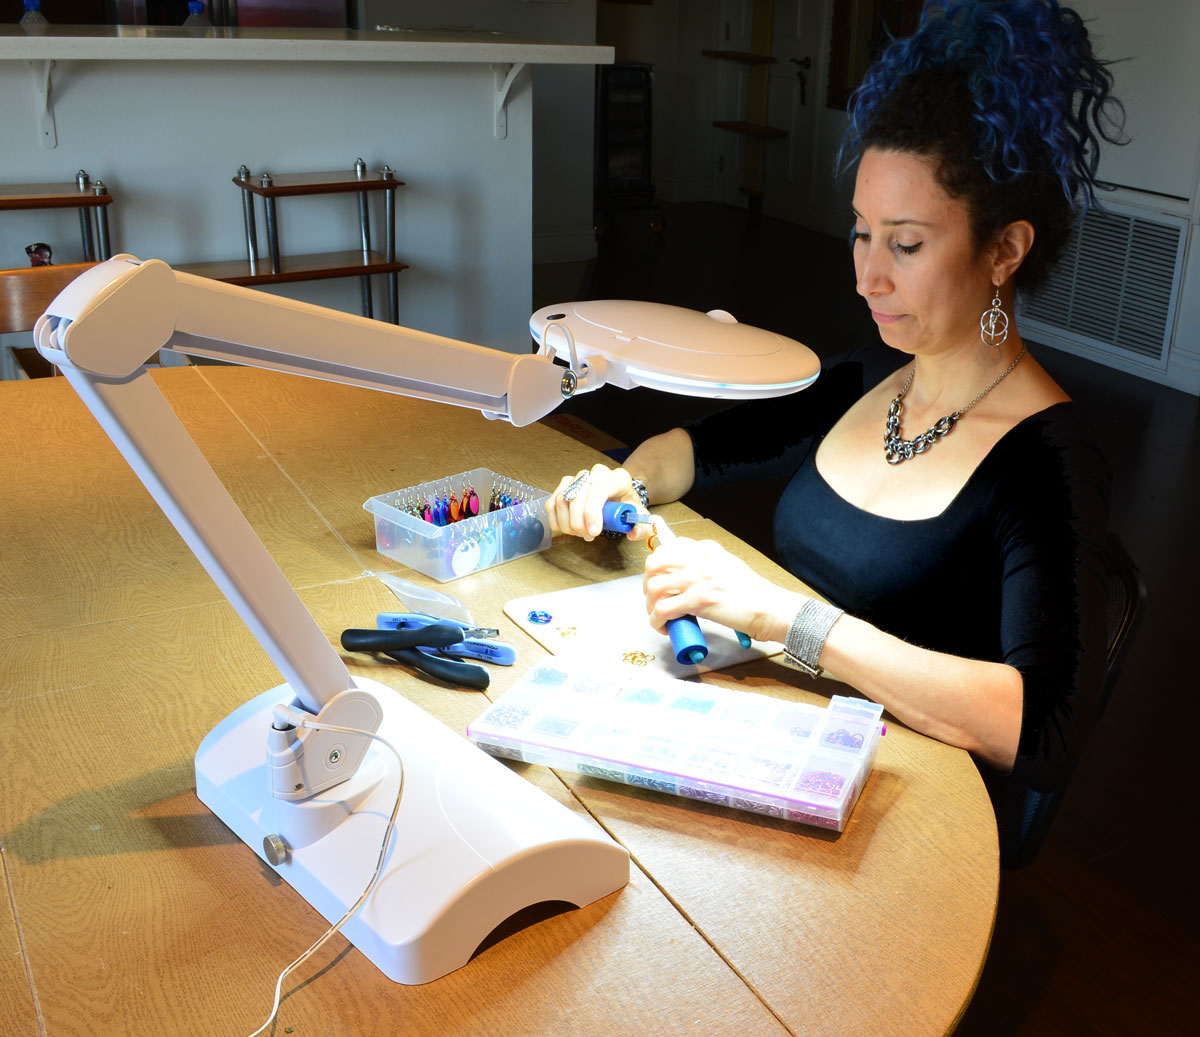 rebeca mojica making chainmaille using table craft lamp by brightech